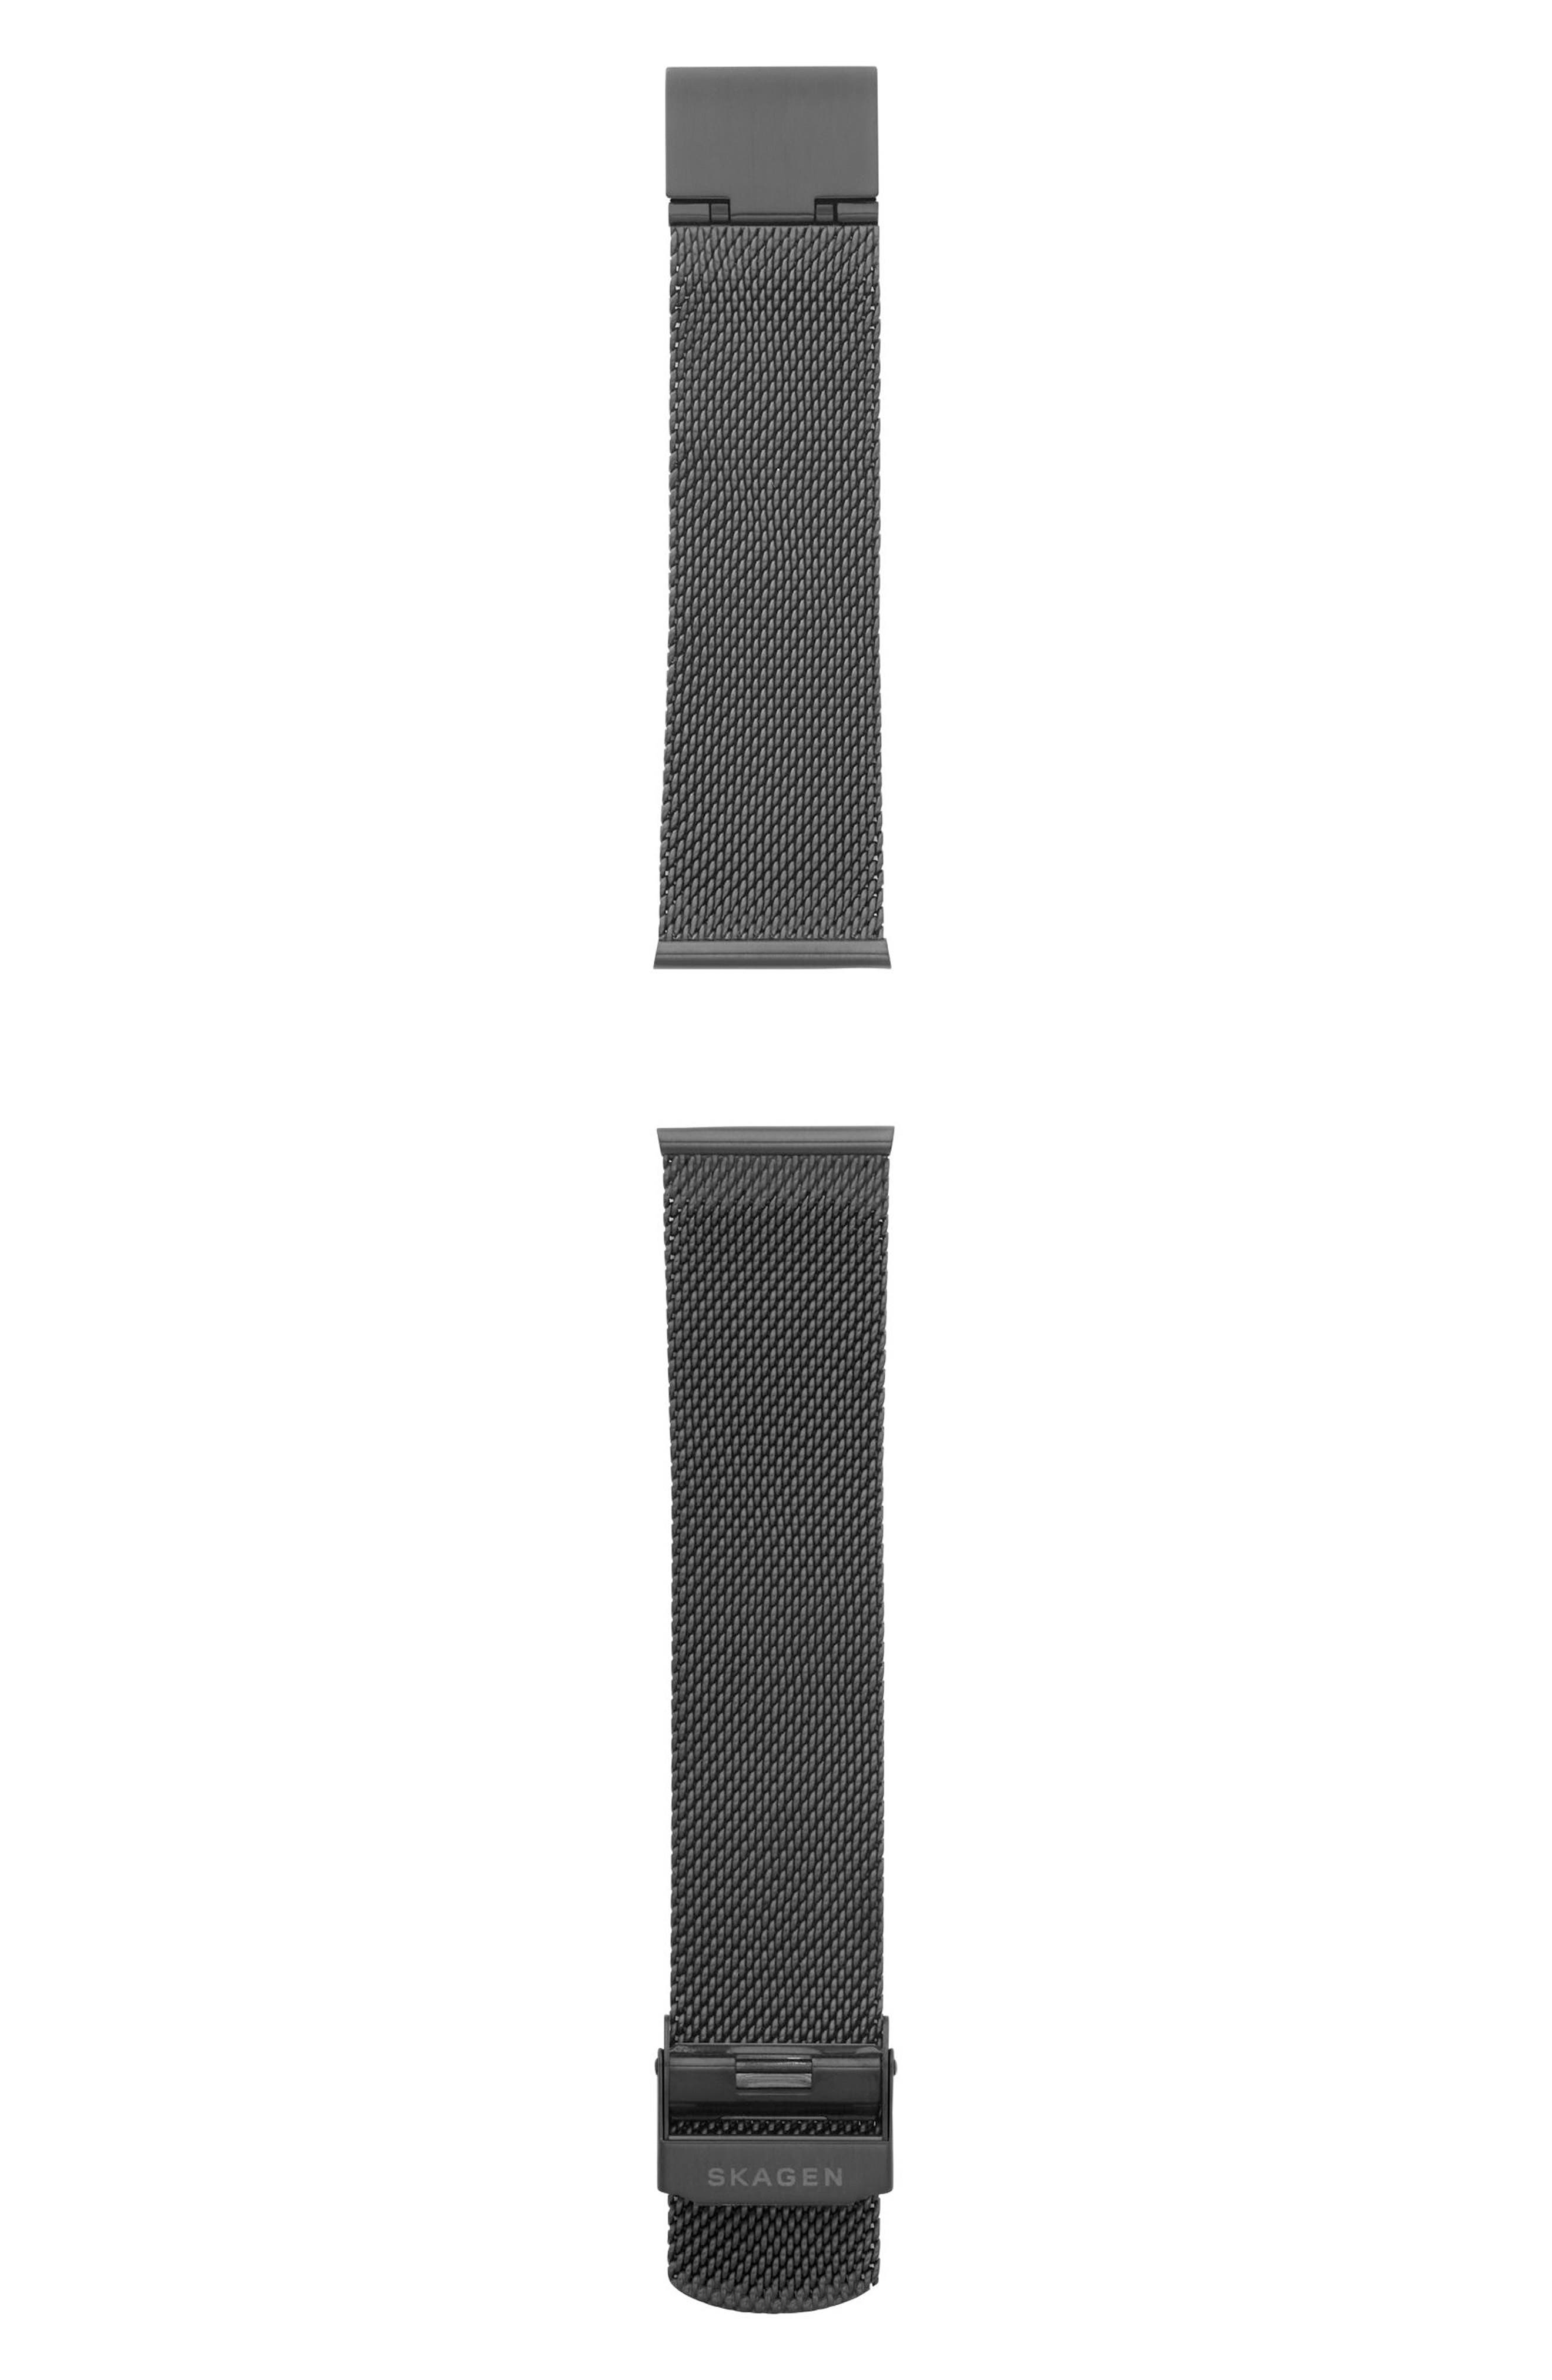 Skagen Holst Mesh Watch Strap, 21mm